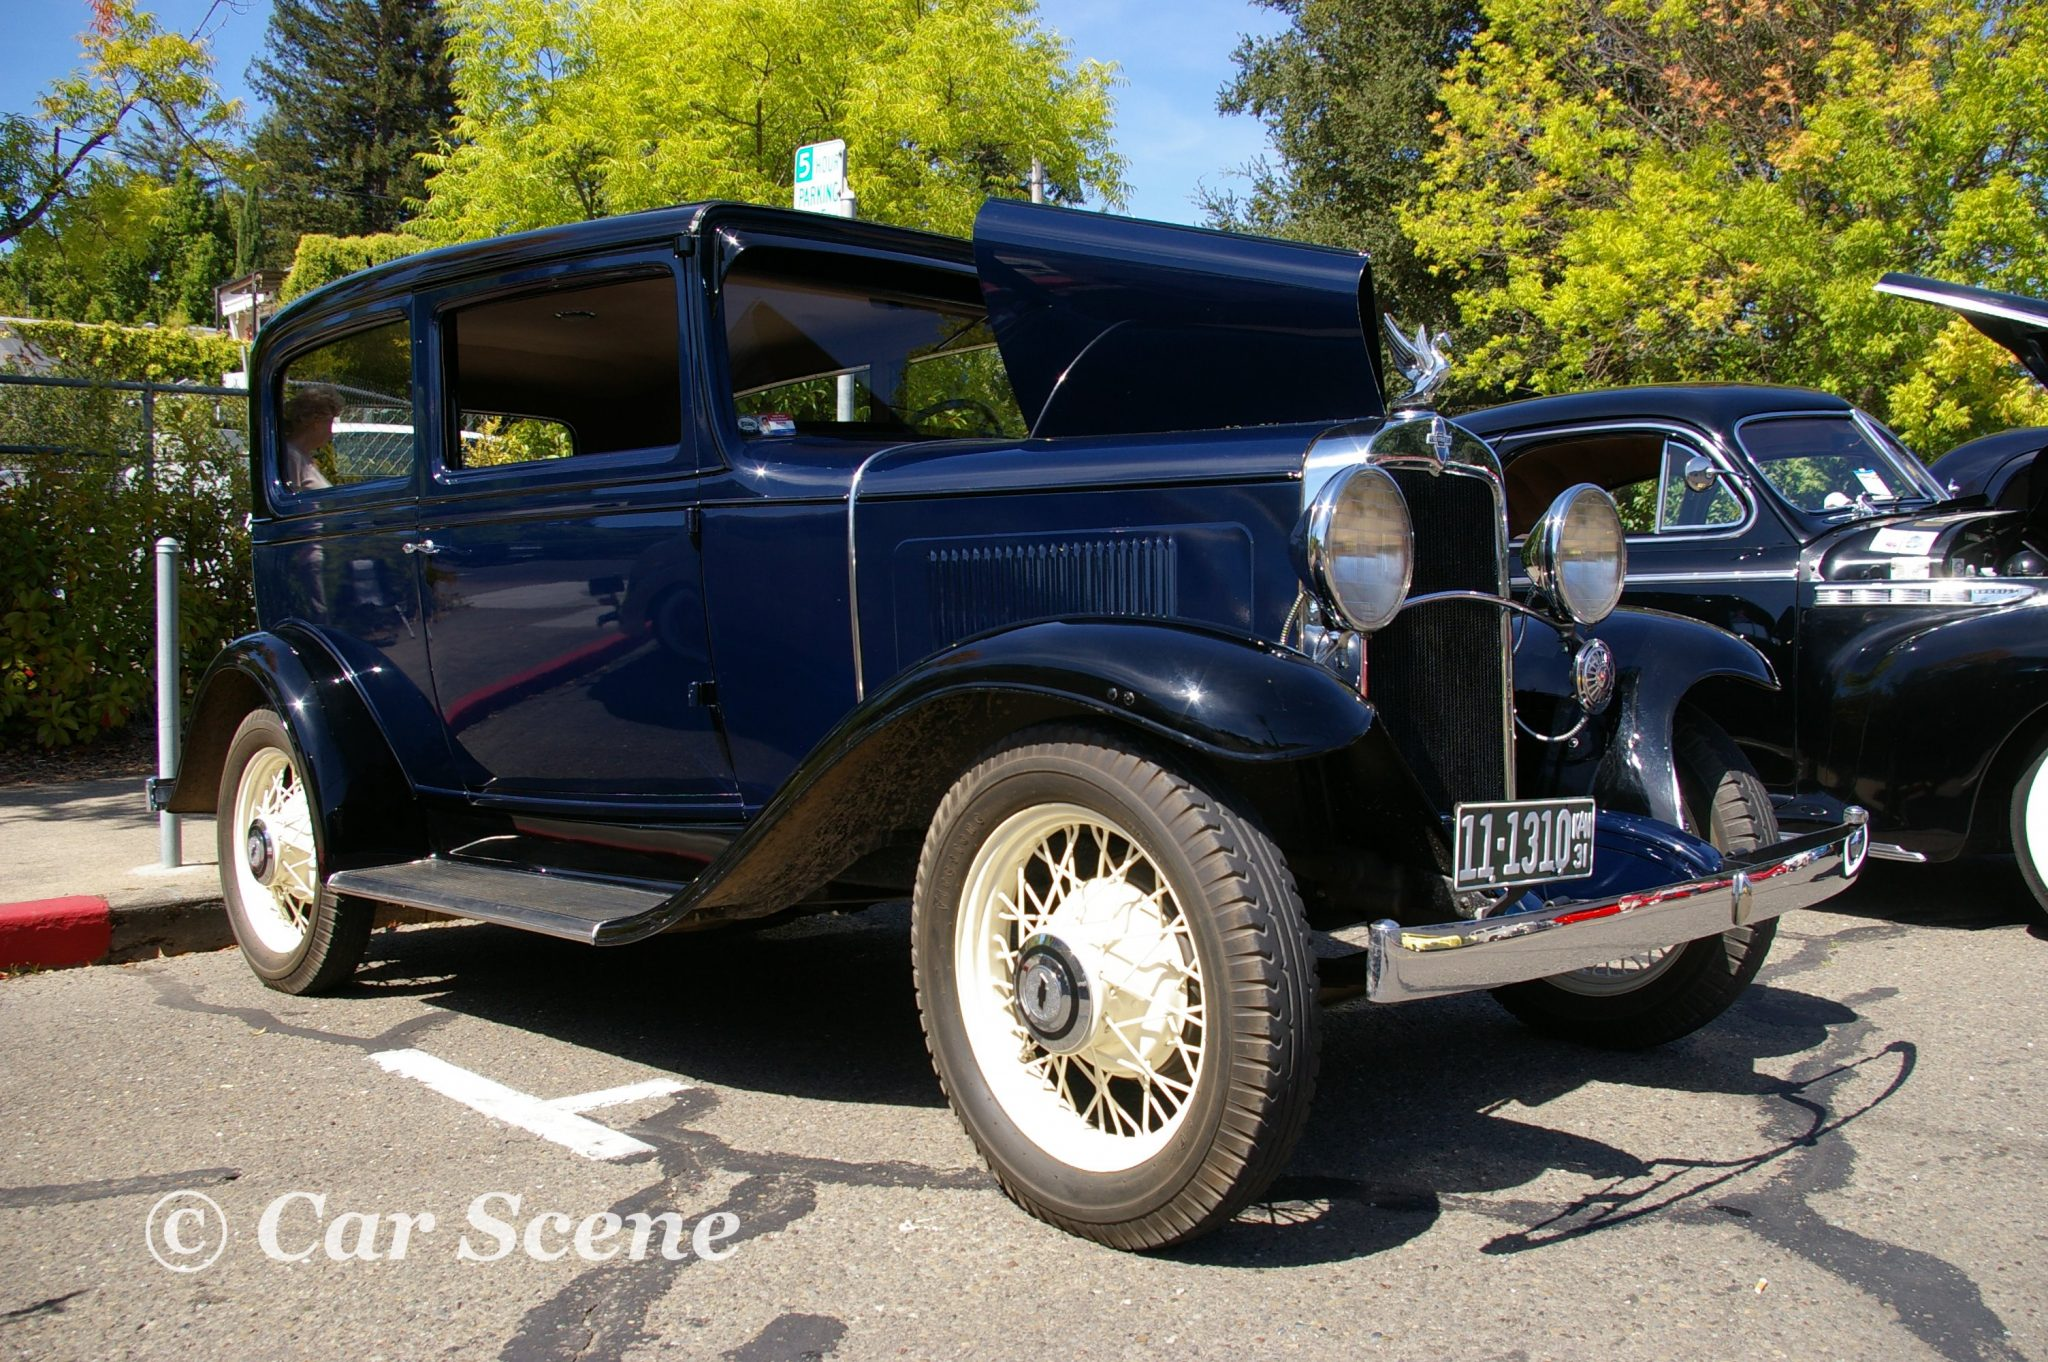 1932 Chevrolet 2 door sedan front three quarters view